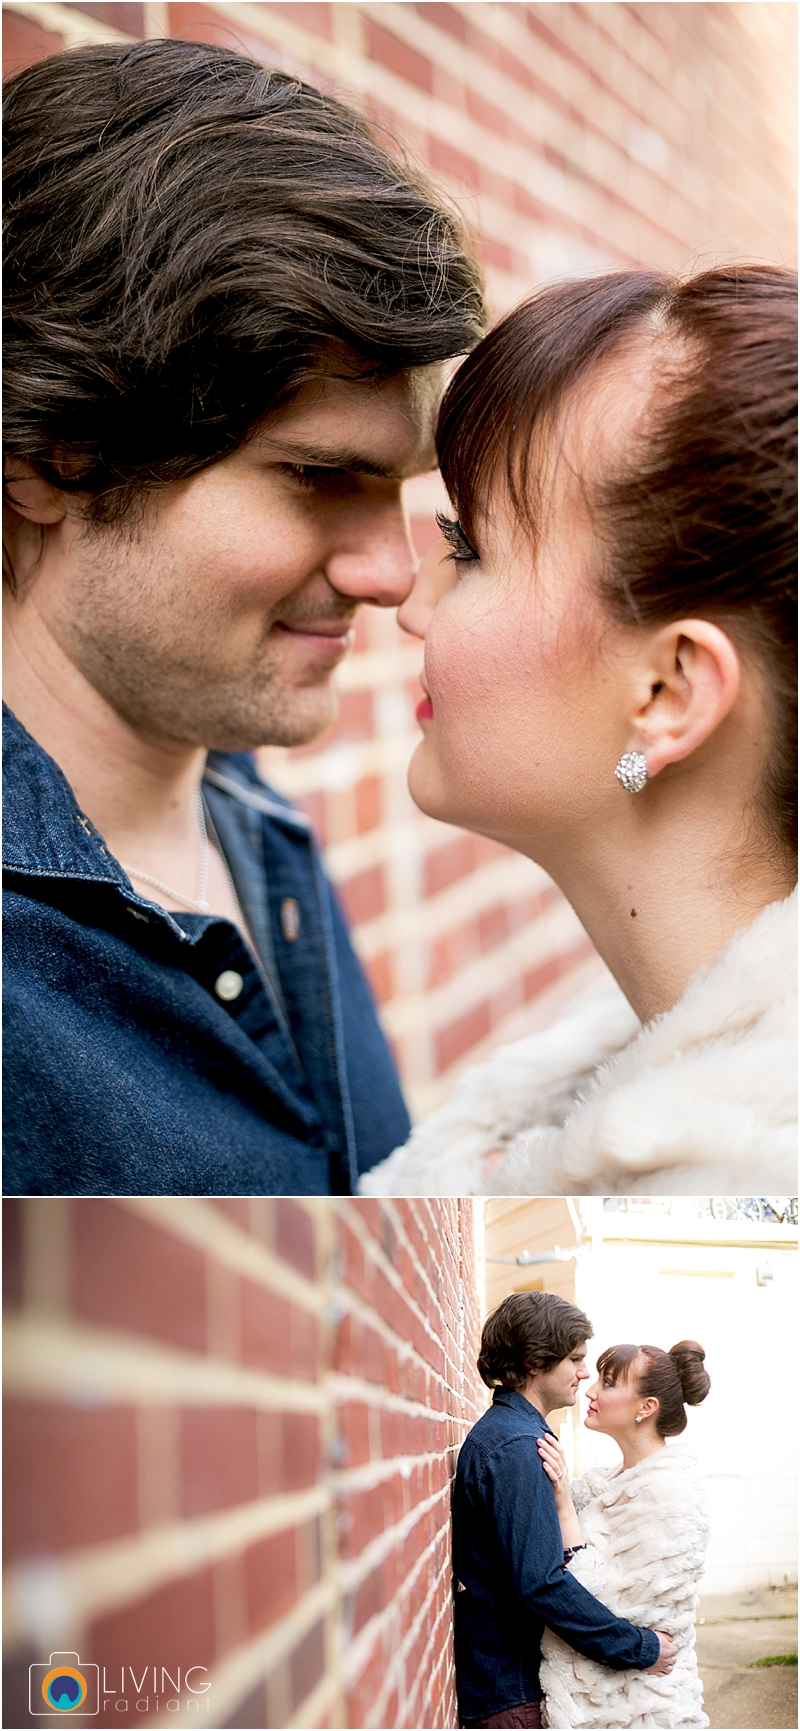 Christina-Eric-Annapolis-Maryland-Engagement-Photography-Living-Radiant-Photography-outdoor-water-sailing-downtown_0017.jpg